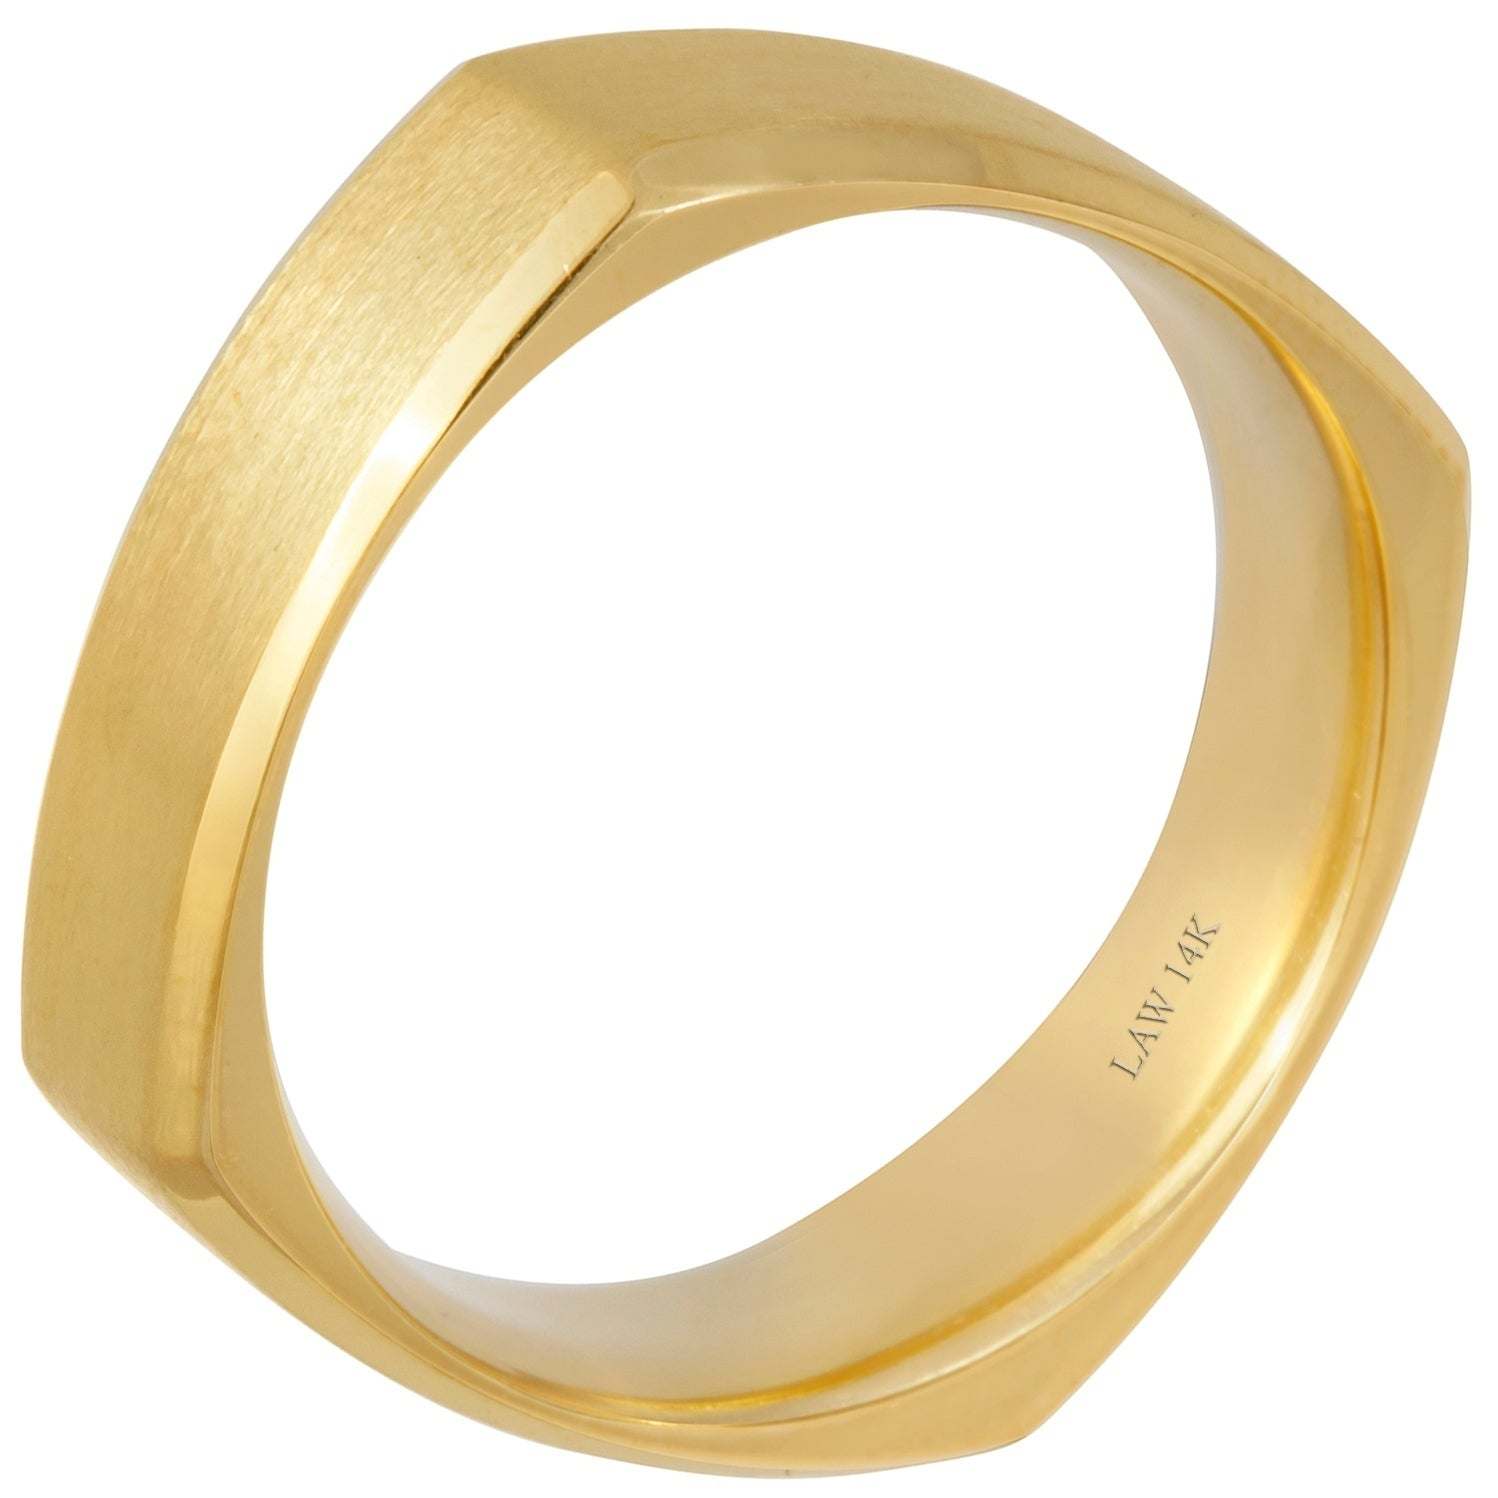 3c9df1397f3 Shop 14k Yellow Gold Satin Beveled Comfort Fit Men s Square Wedding Bands -  On Sale - Free Shipping Today - Overstock - 15299076